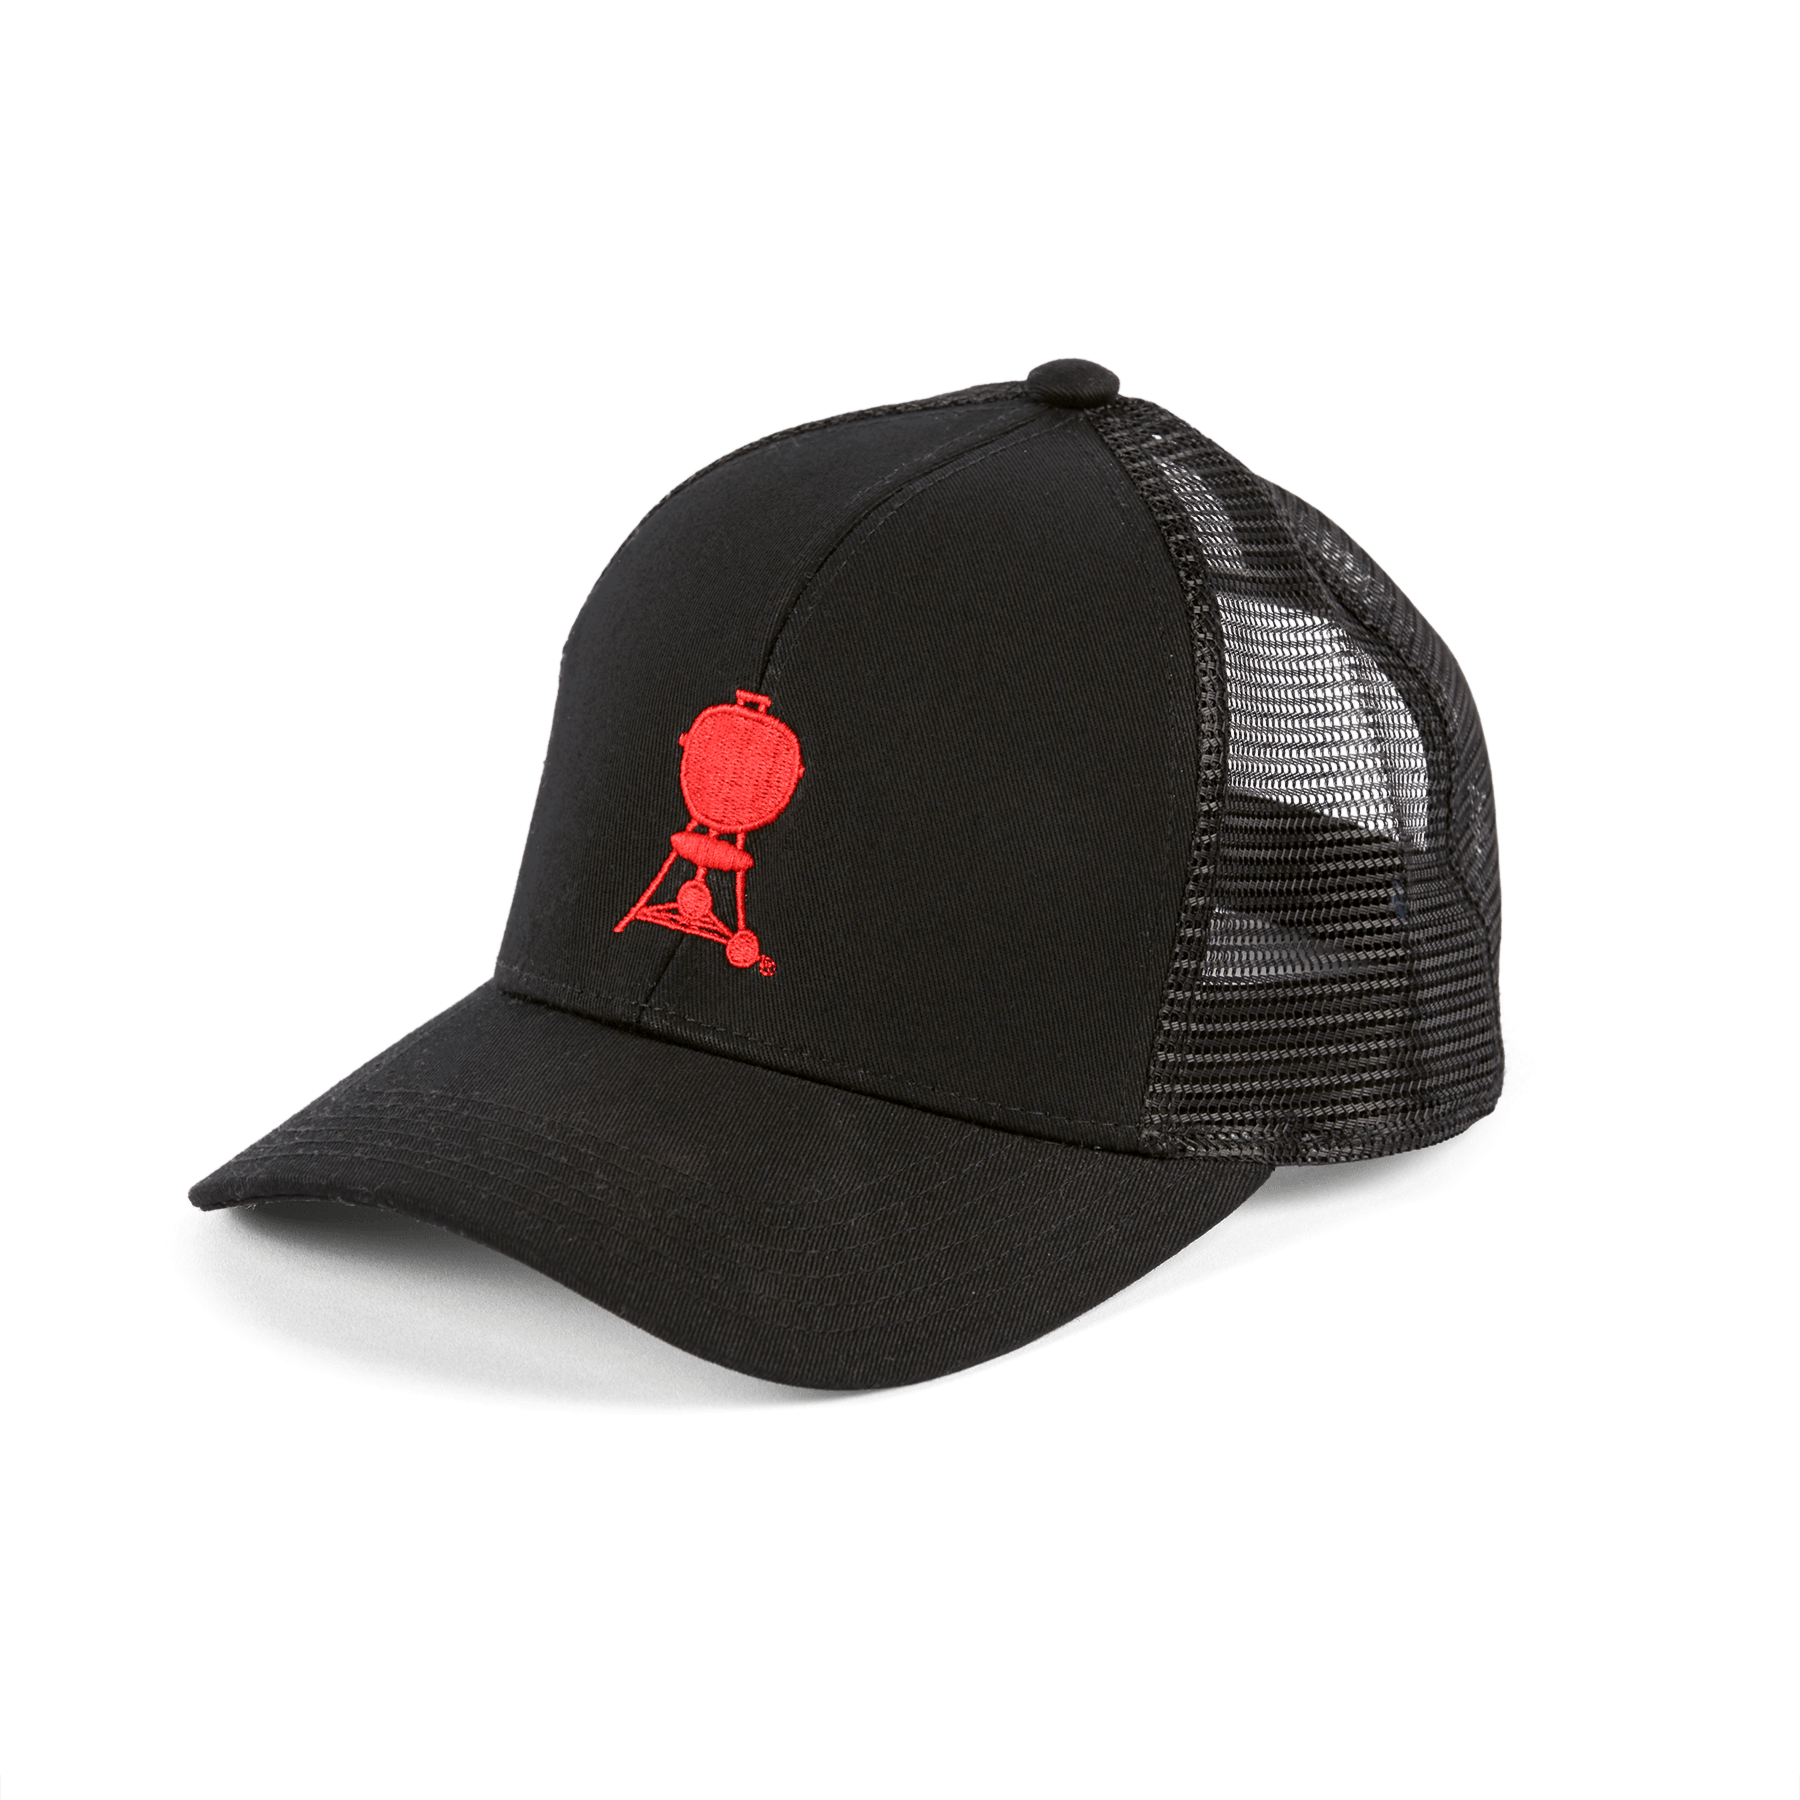 Gorra Red Kettle - Negra